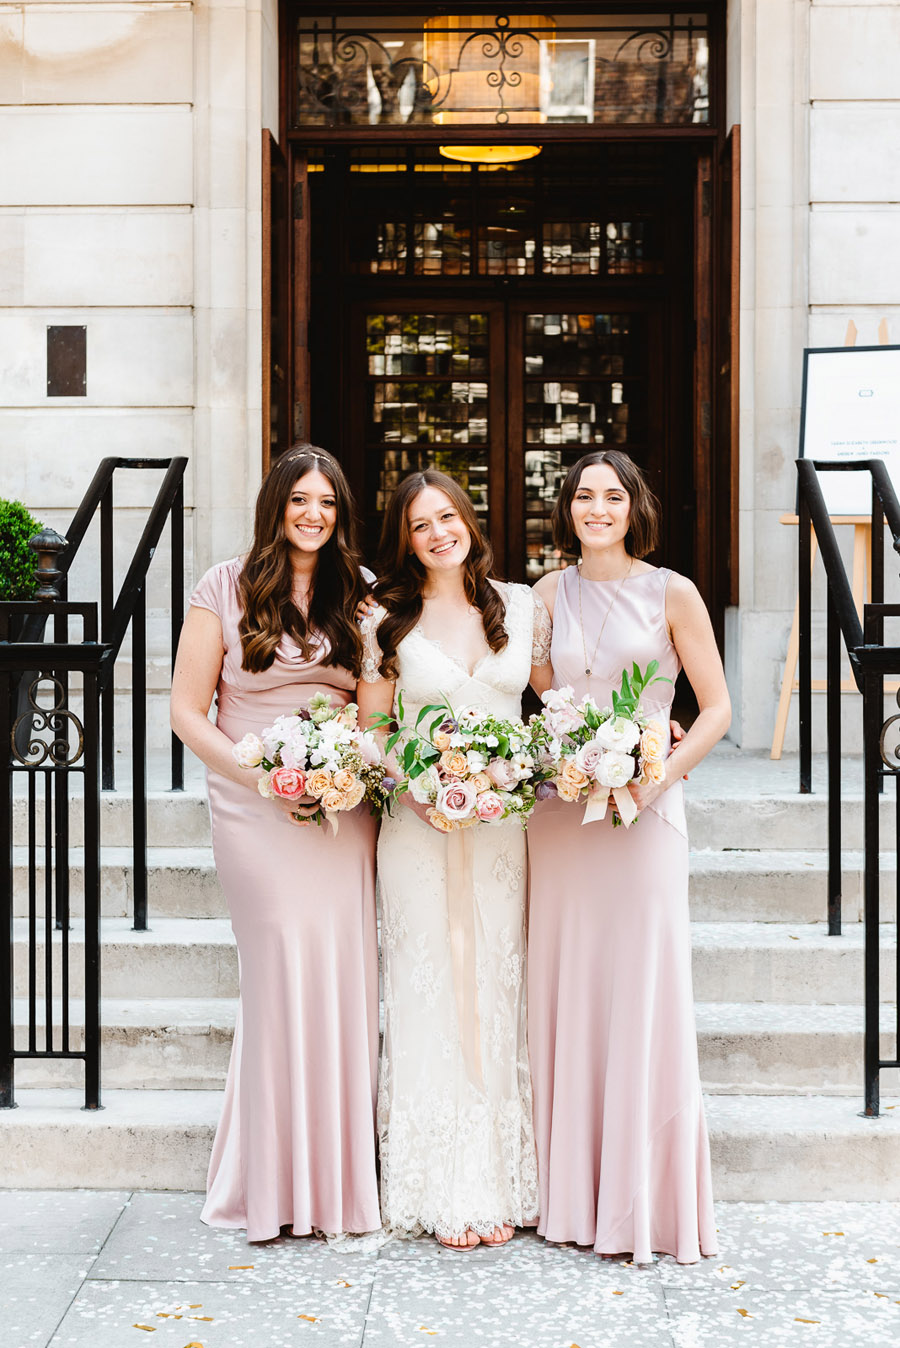 Group photos made easy, wedding photography tips for brides and grooms with Fiona Kelly Photography (18)